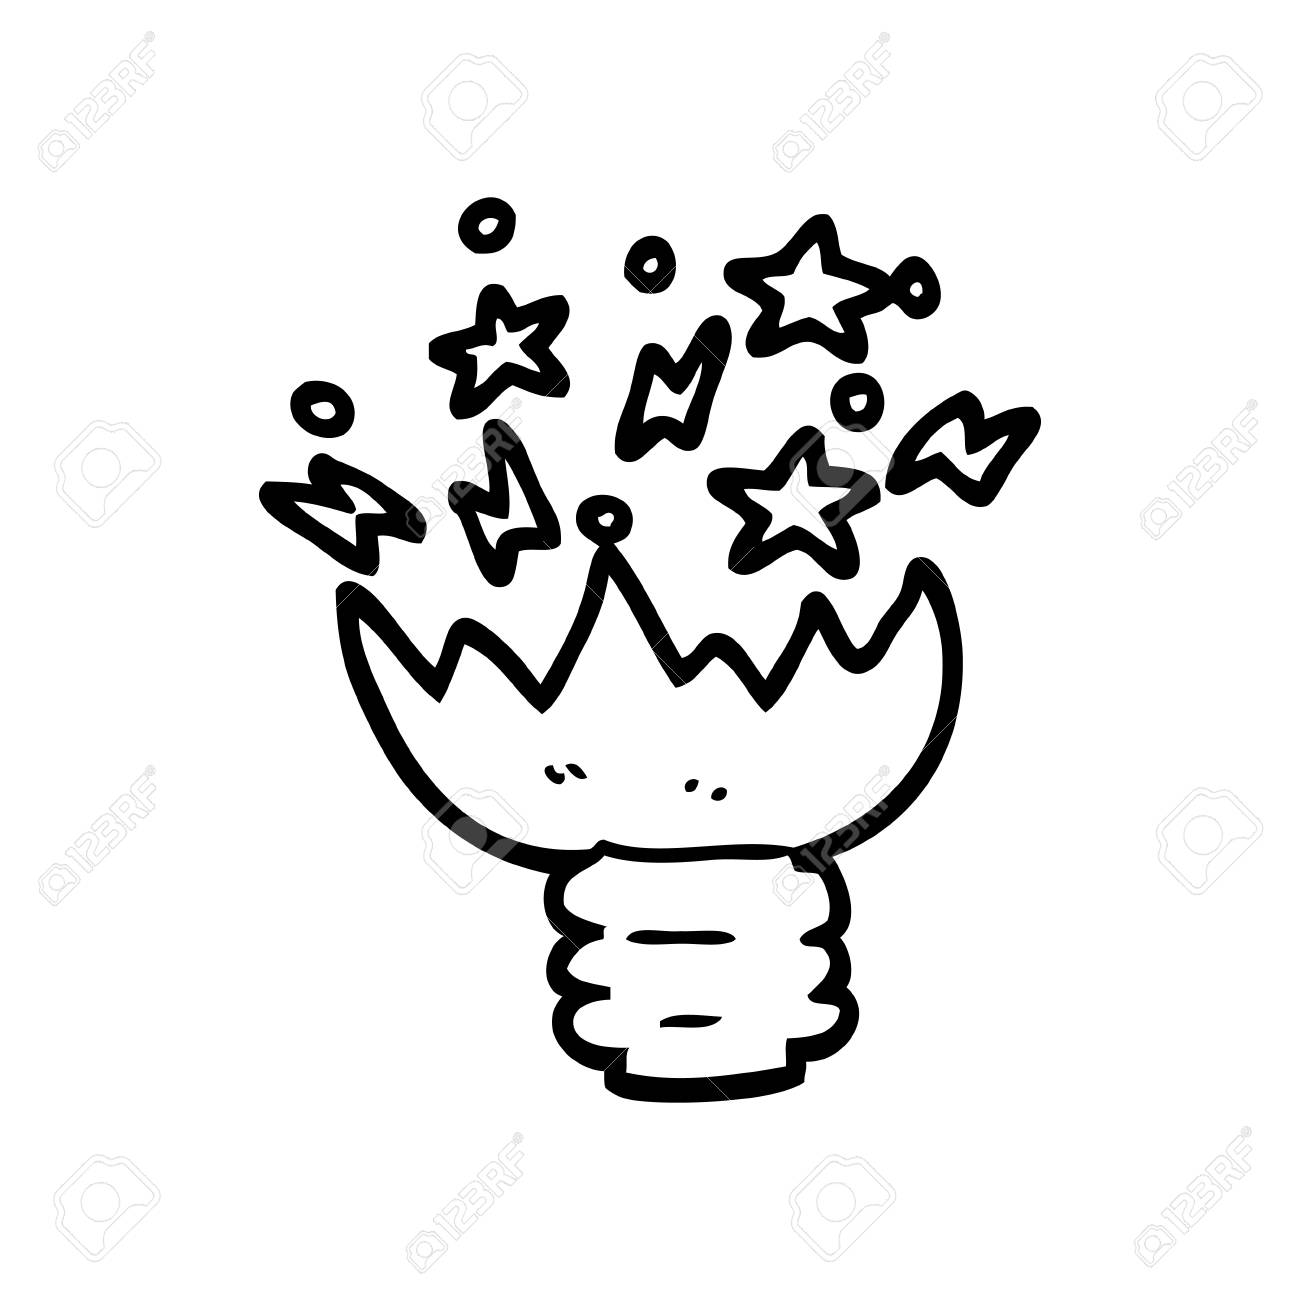 Black And White Cartoon Exploding Light Bulb Royalty Free Cliparts